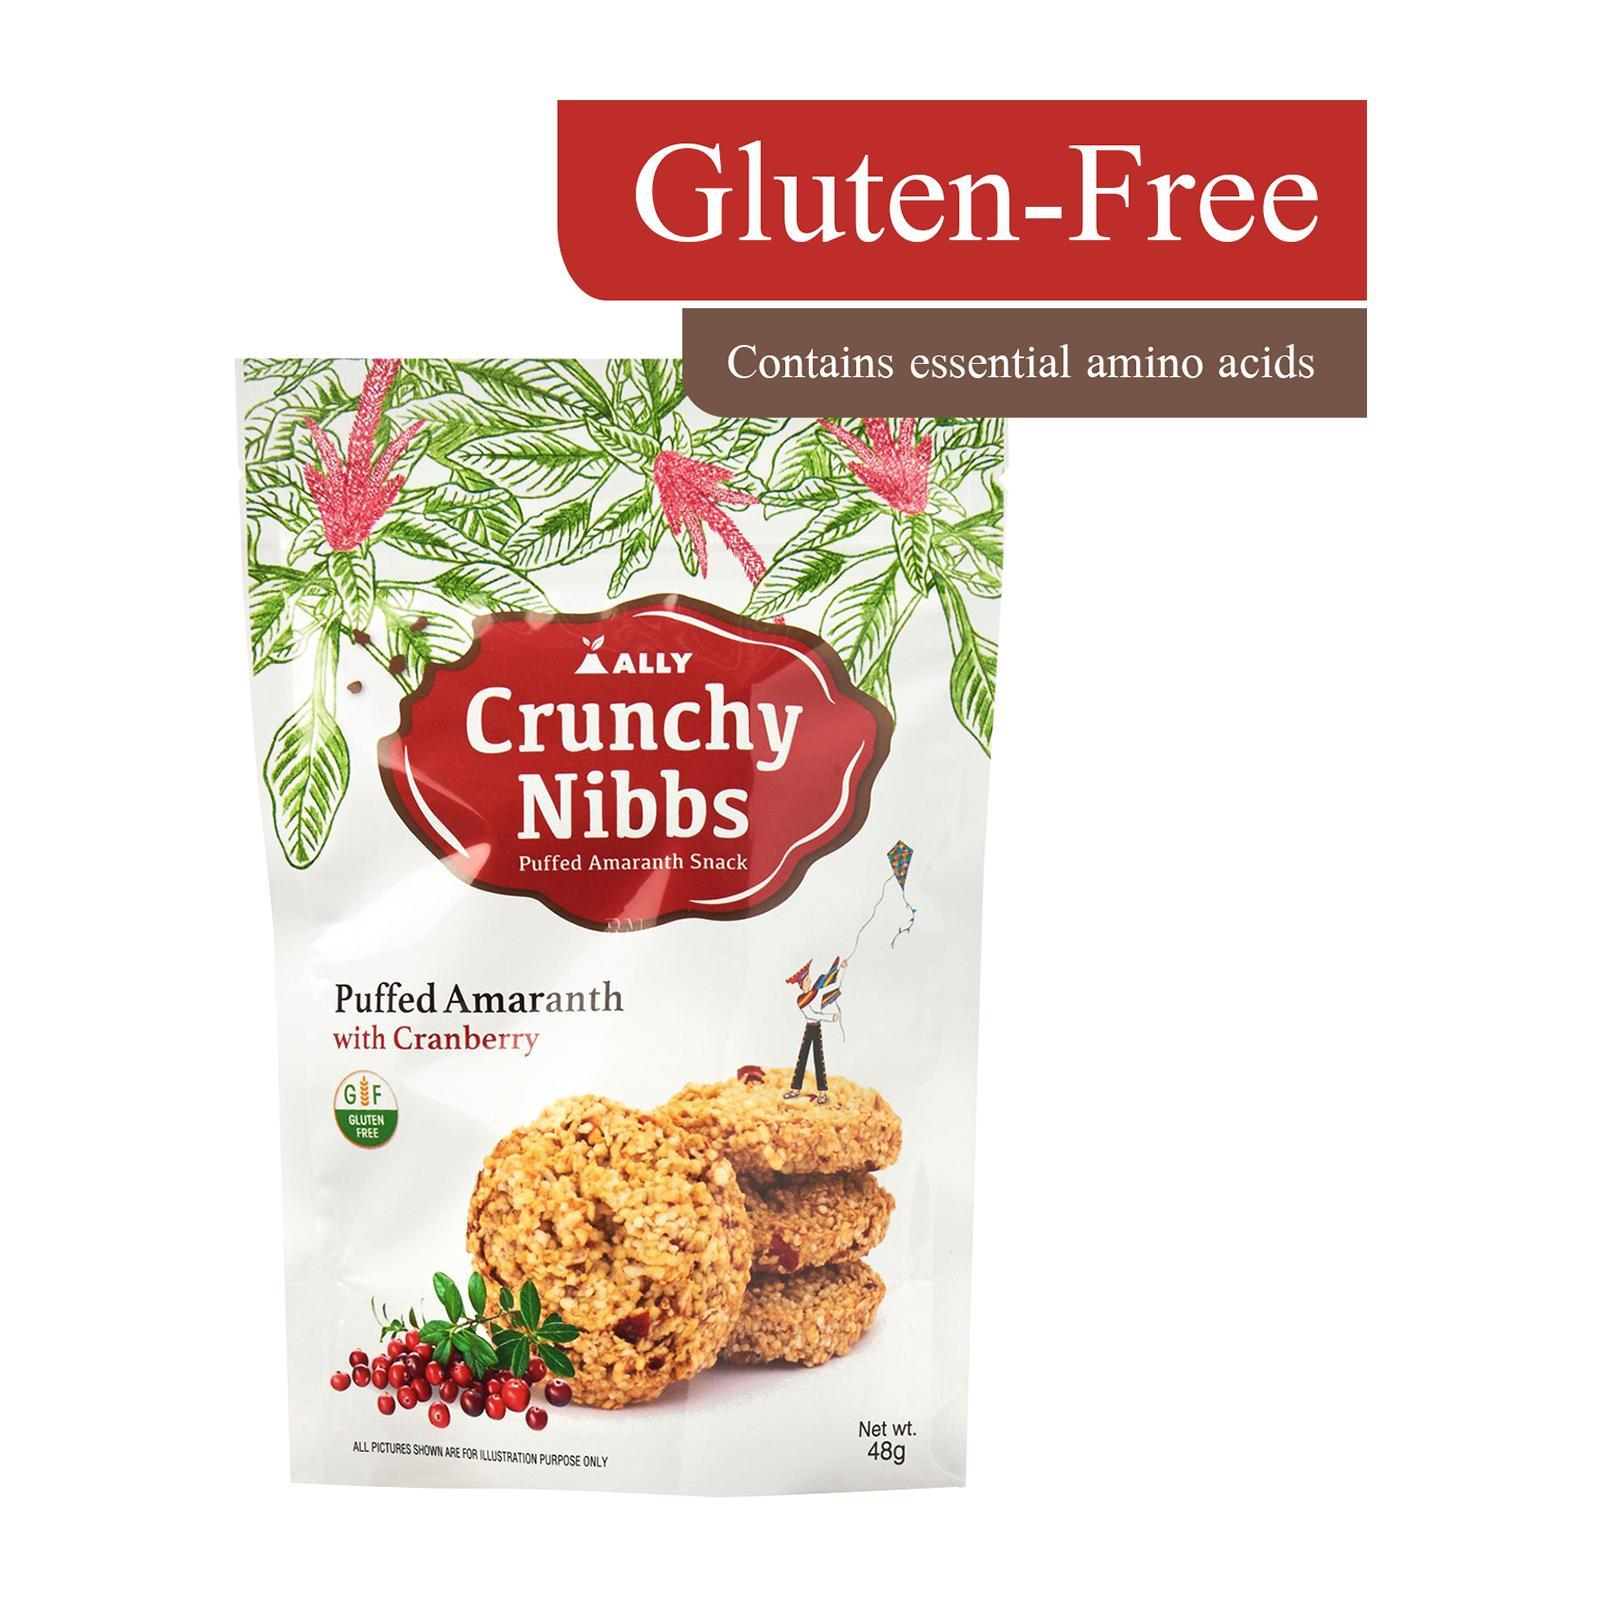 Crunchy Nibbs Puffed Amaranth Snack Cranberry - by Optimo Foods